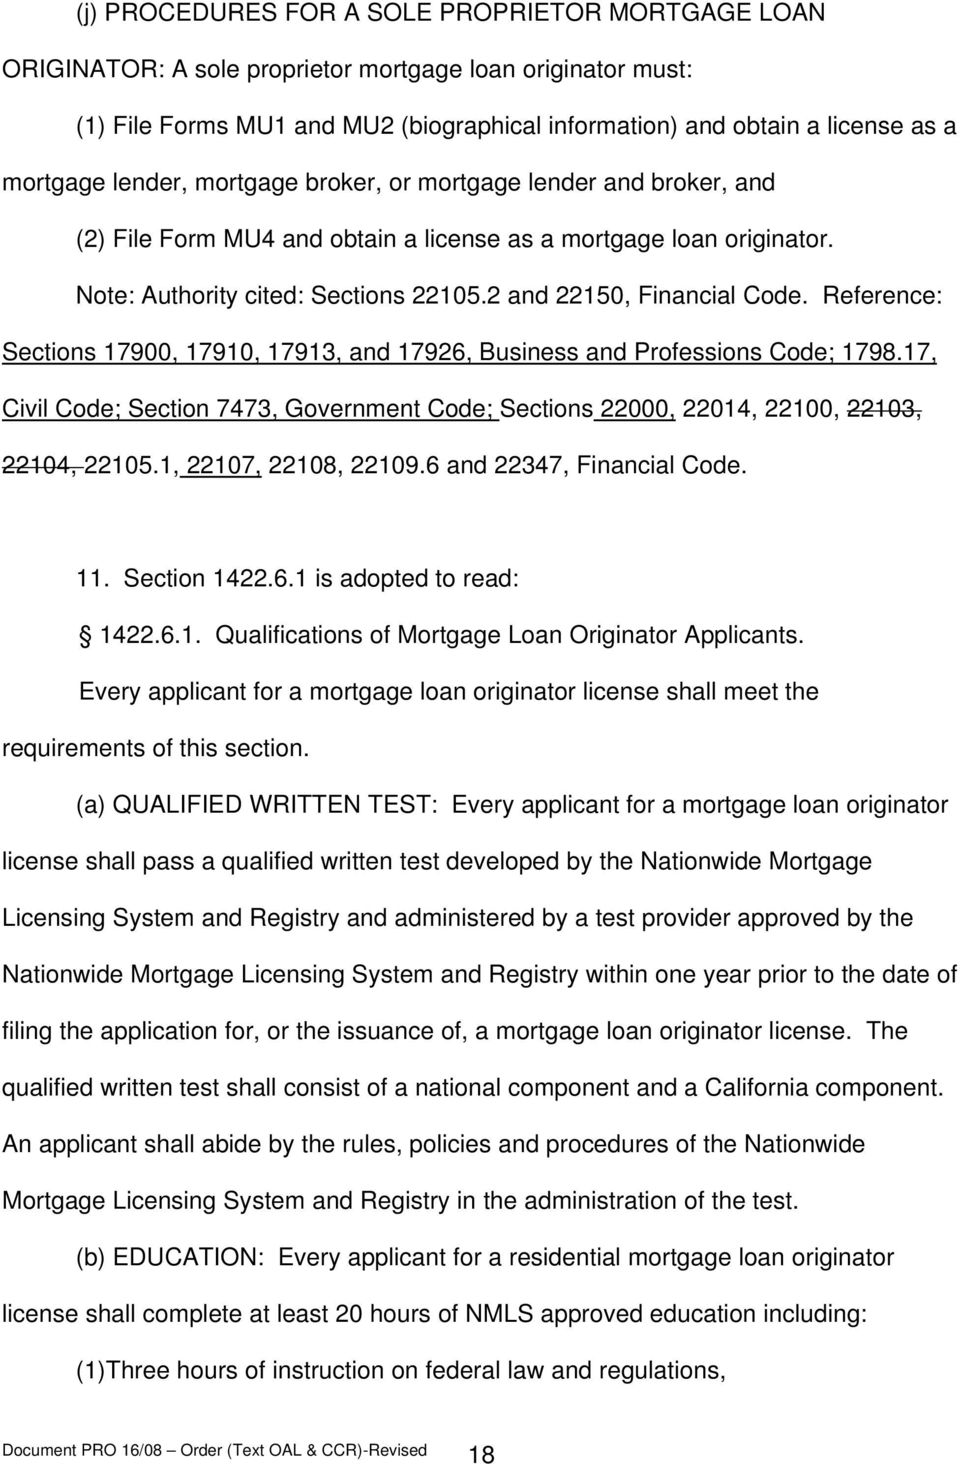 2 and 22150, Financial Code. Reference: Sections 17900, 17910, 17913, and 17926, Business and Professions Code; 1798.